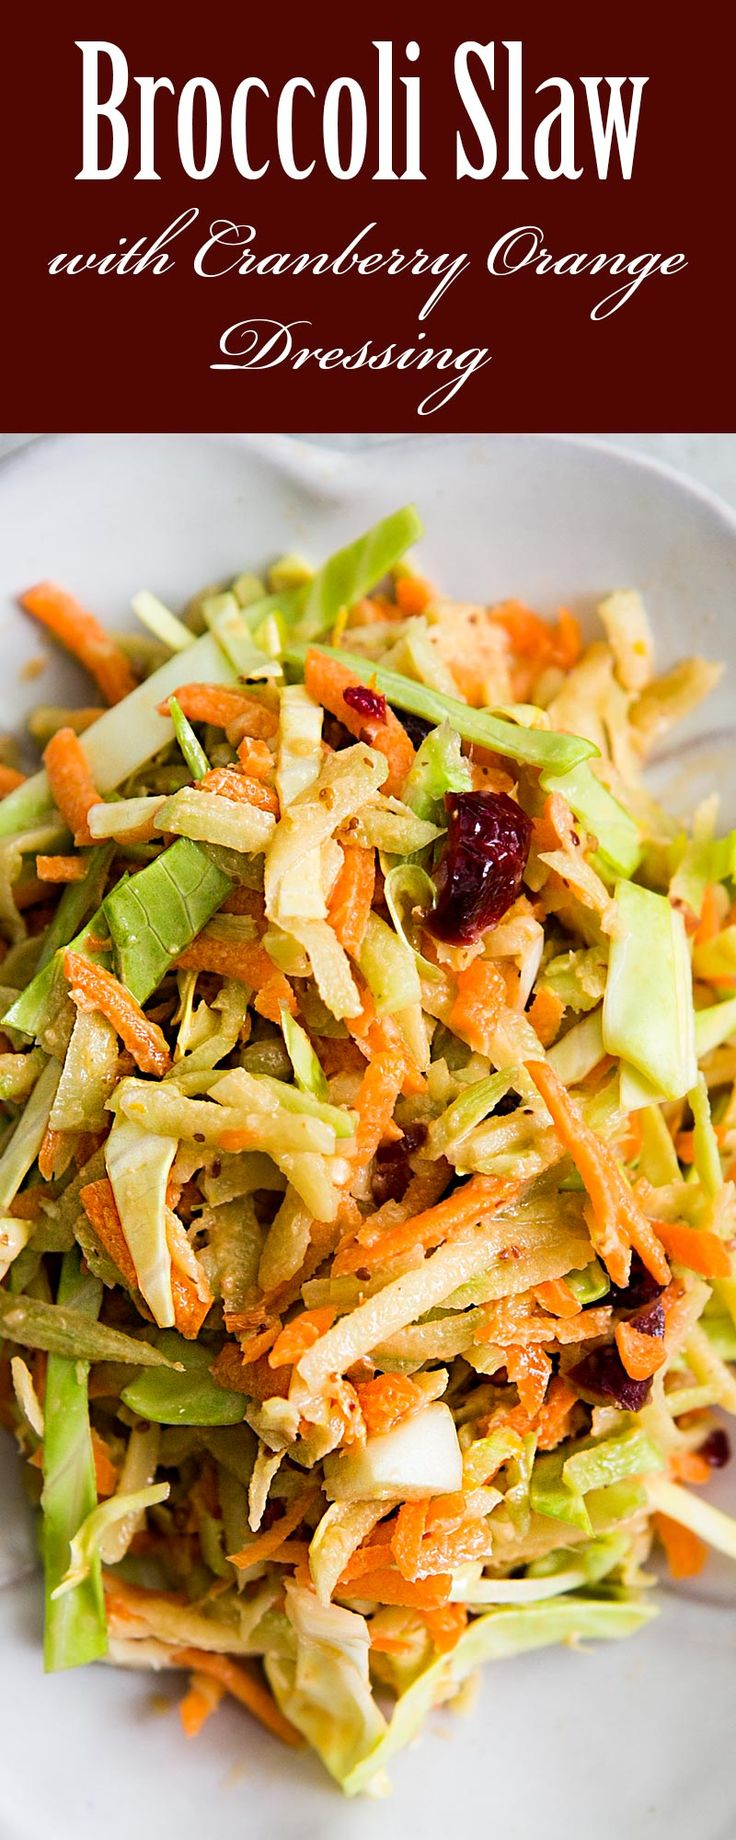 Broccoli Slaw with Cranberry Orange Dressing ~ Broccoli slaw, a coleslaw made with broccoli stems, cabbage, and carrots, with a tangy cranberry orange dressing. ~ SimplyRecipes.com